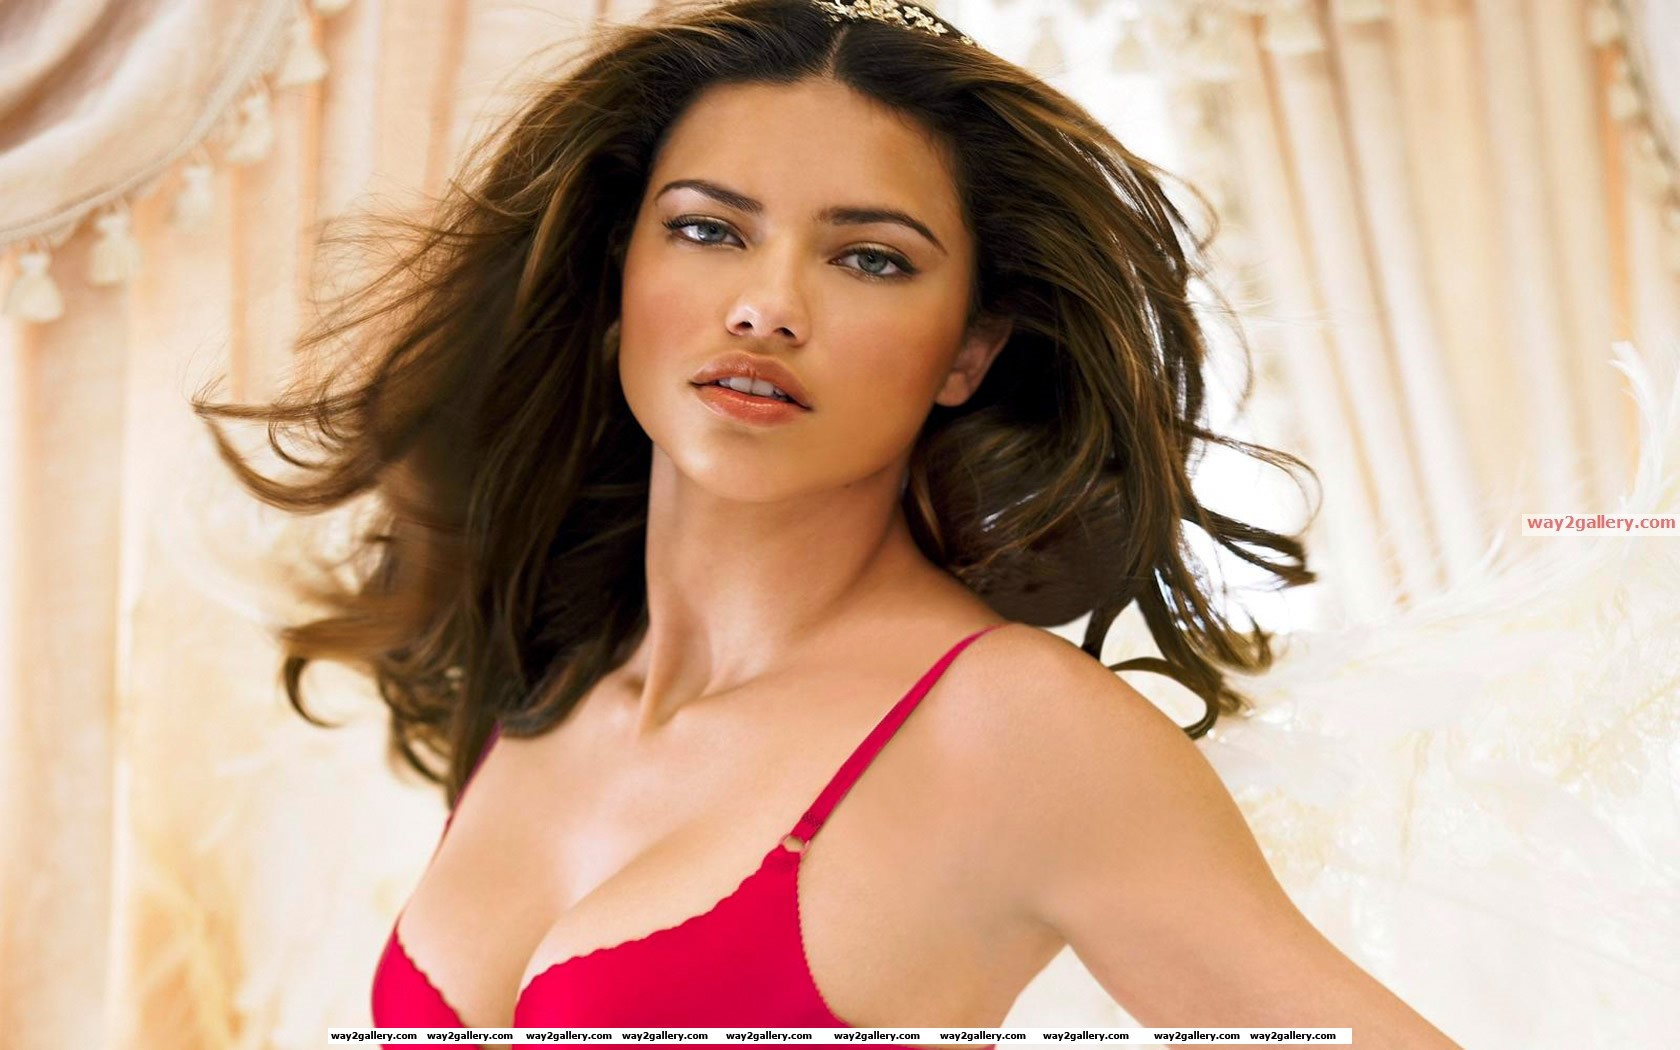 Hot wallpapers hot models wallpapers50